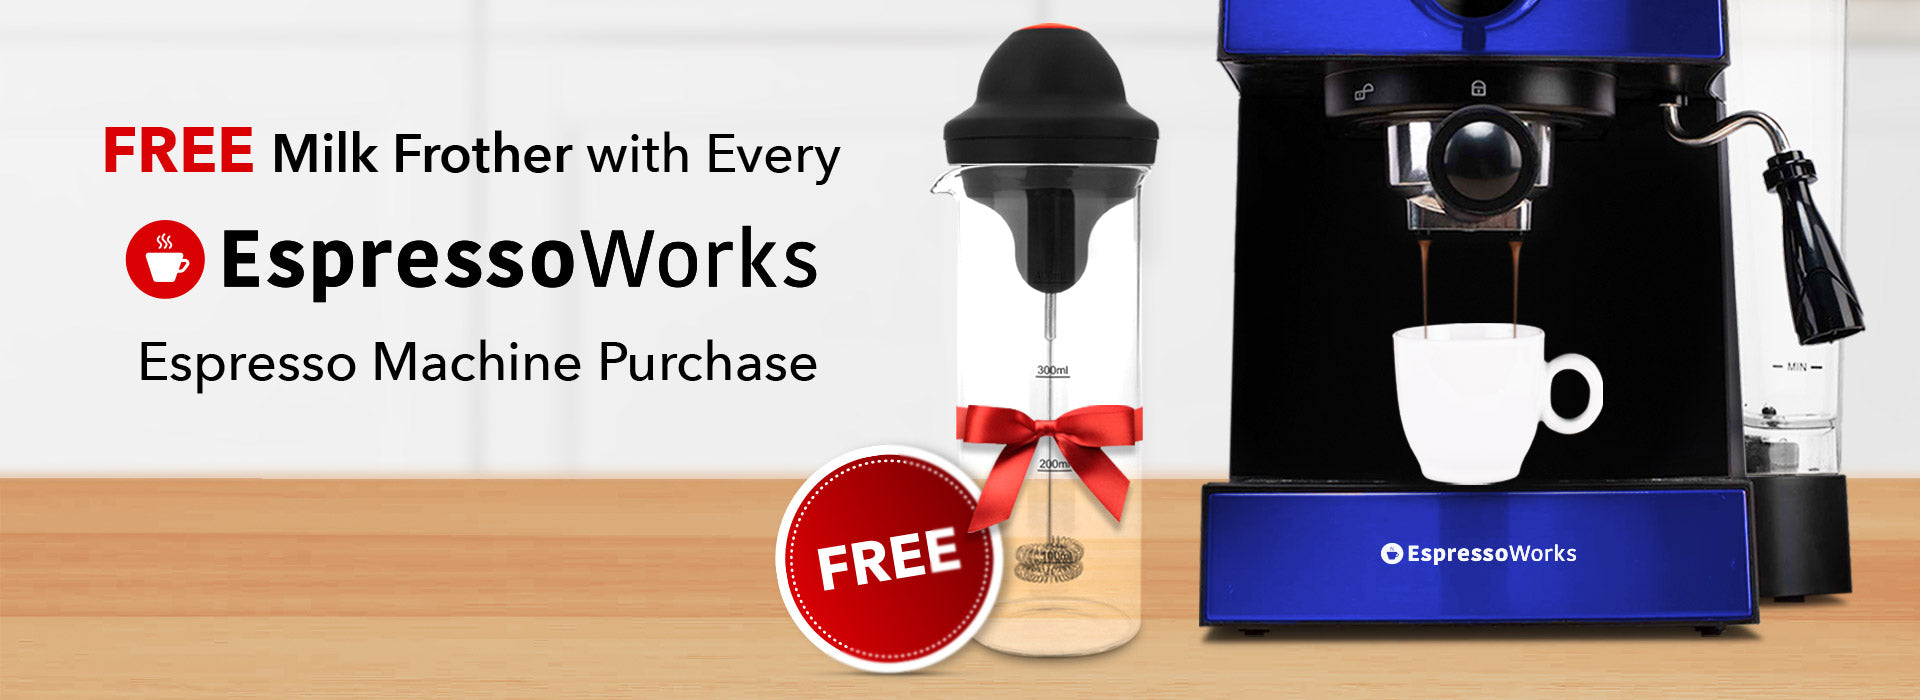 Get a free milk frother with any EspressoWorks Machine purchase for Coffee Milkshake Day!